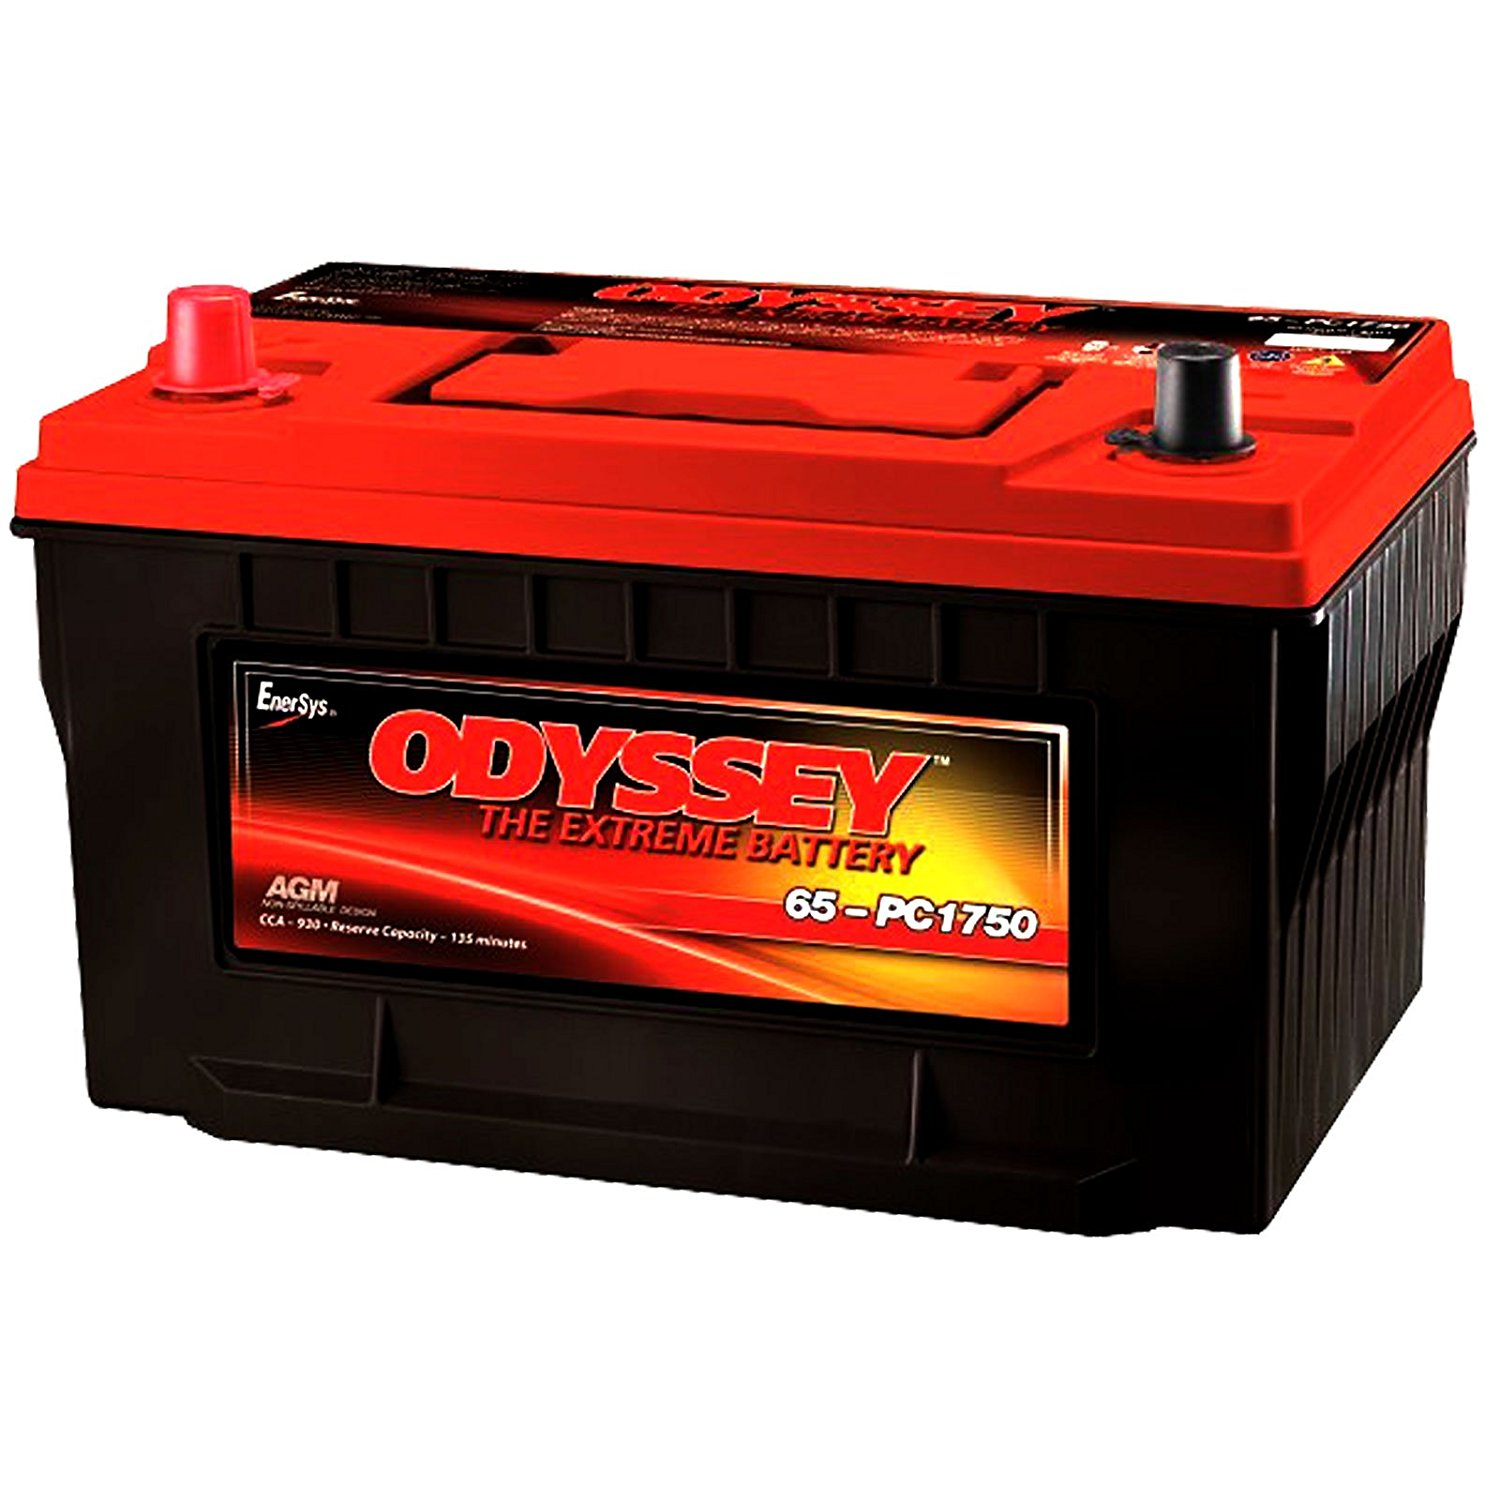 Odyssey Extreme PC1750/65 950CCA Sealed AGM Automotive Start Battery for Emergency response: Police cruisers, fire trucks, ambulances. 4X4 Off-Road/Off-road vehicles - SUVS, Light trucks. Heavy Duty/Commercial Tractor trailers Earth-moving construction equipment, Farm, and Lawnmower Cars and